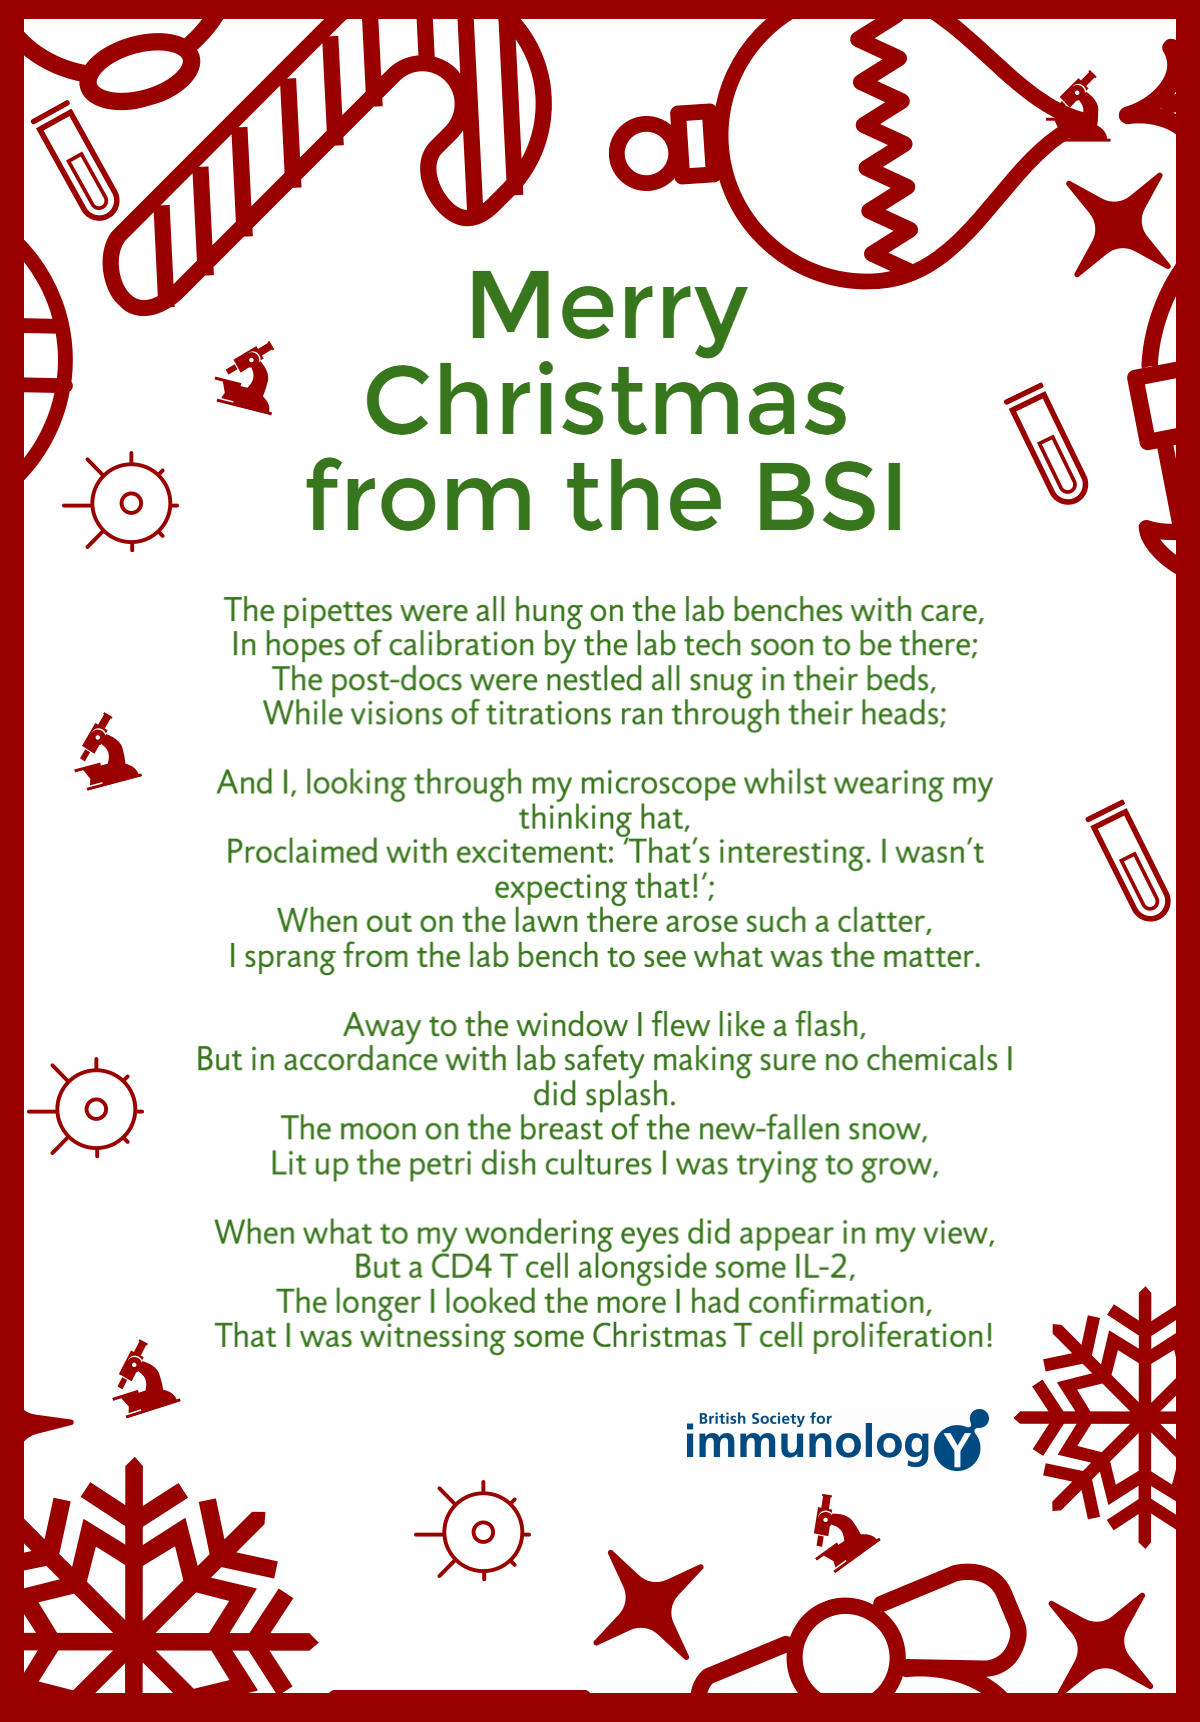 Merry Christmas from the BSI | British Society for Immunology